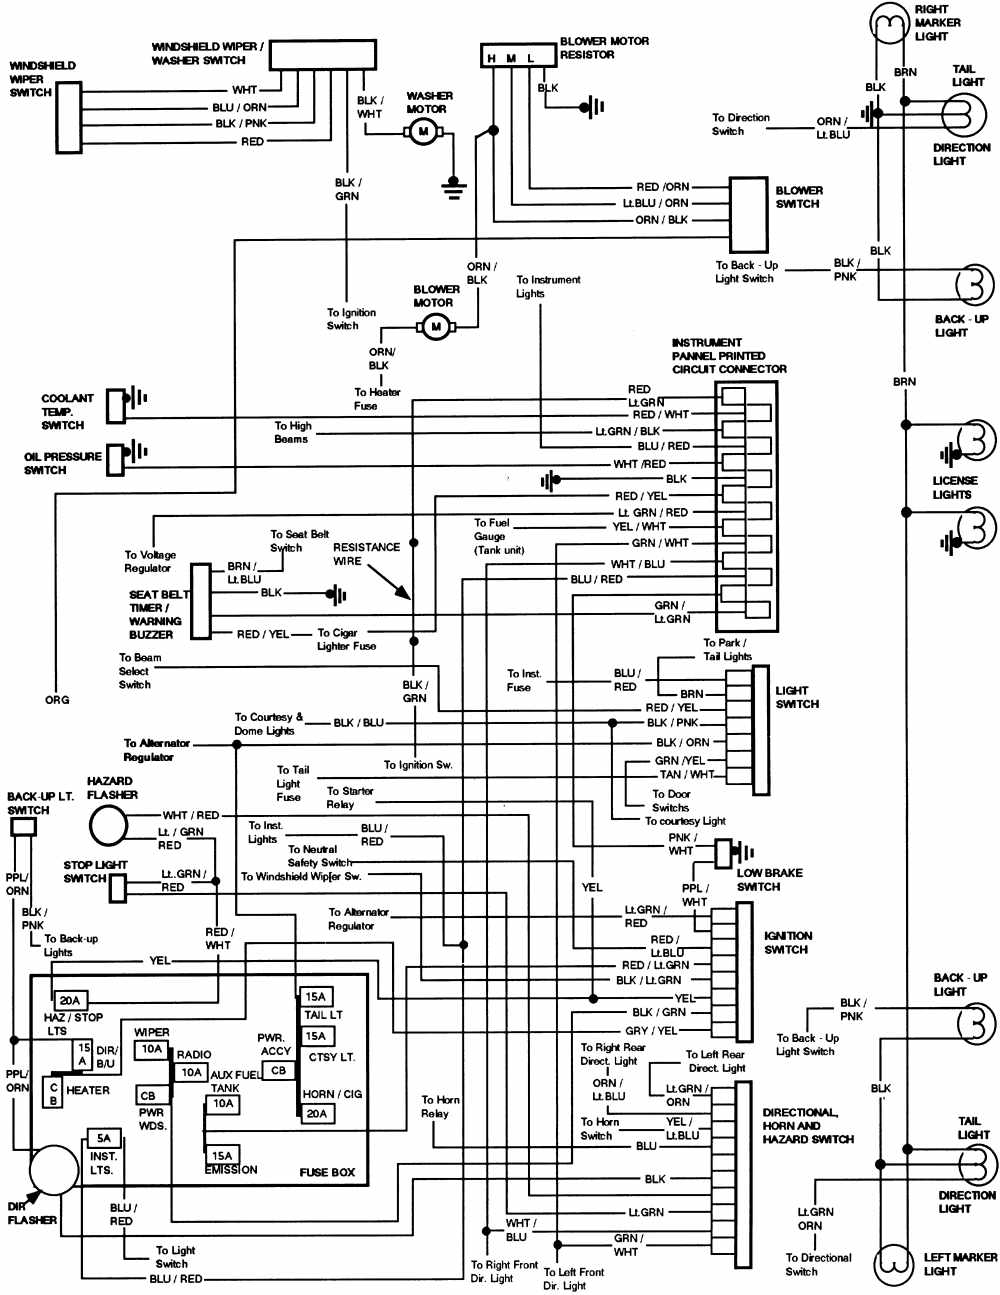 2004 ford f150 radio wiring diagram ford bronco 1984 instrument panel wiring diagram | all ... #3